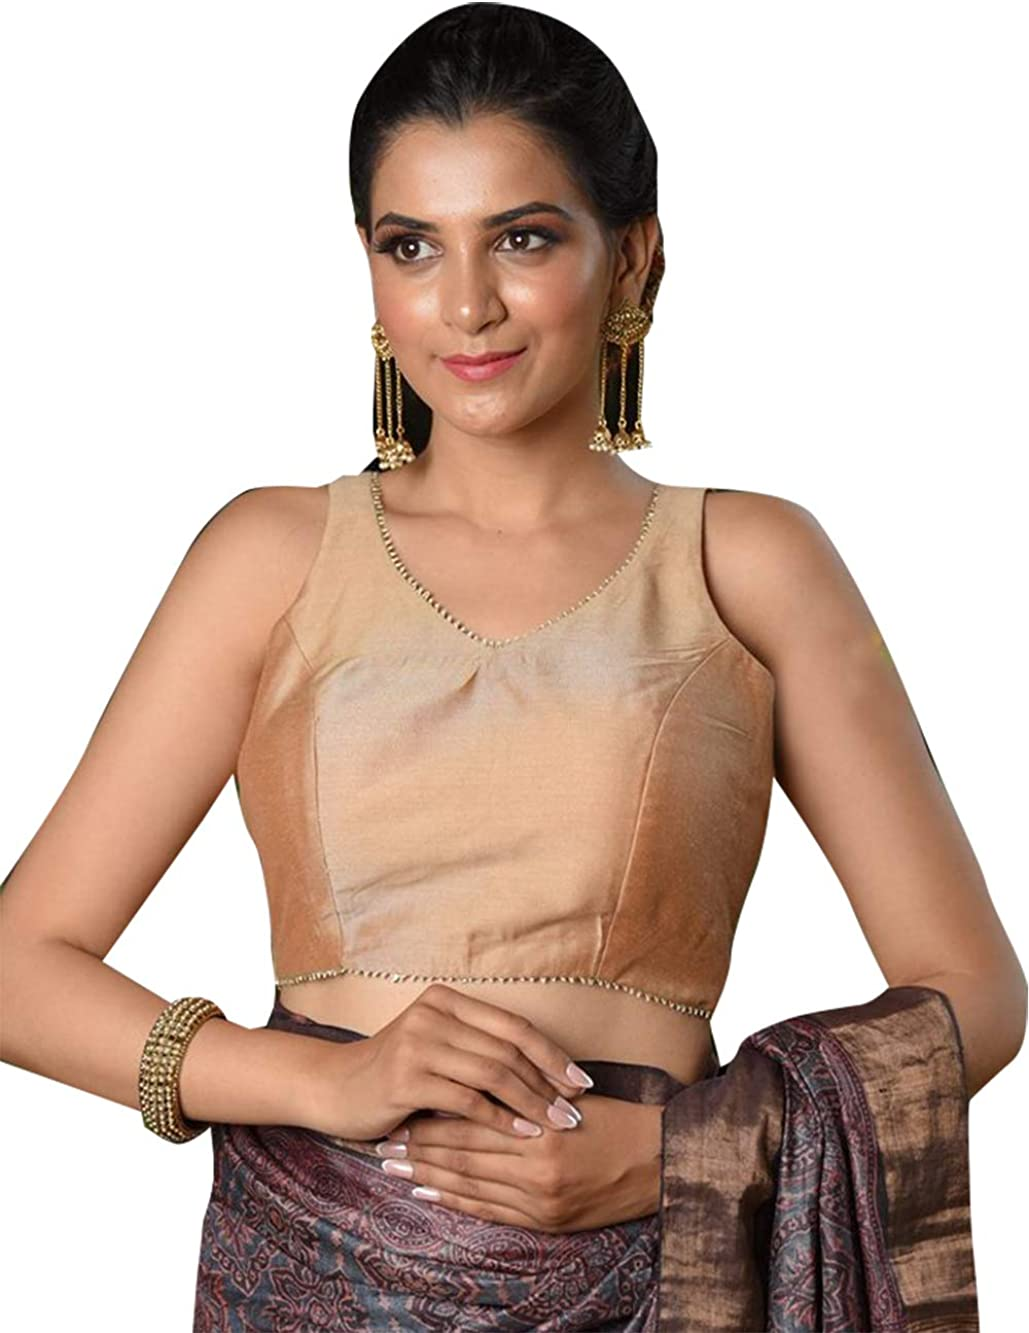 Golden Bollywood Readymade Saree Blouse Indian Sequence Embroidered Choli Stitched Sari Wedding wear Fabric Craft Tunic Top Brides Women